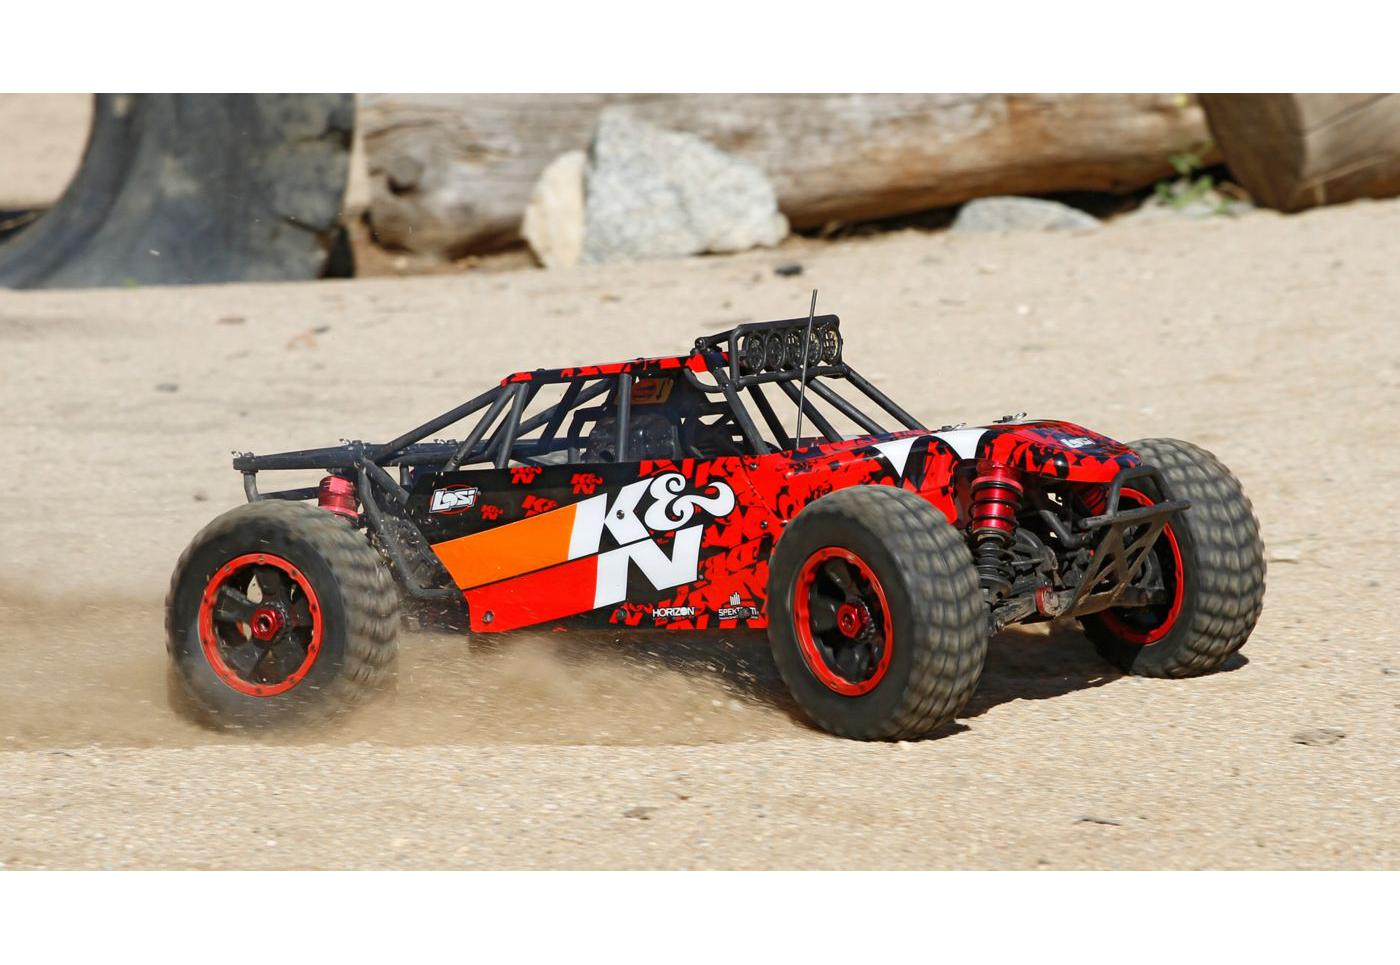 Losi kn desert buggy xl (2016) 1:5 4wd buggy rtr